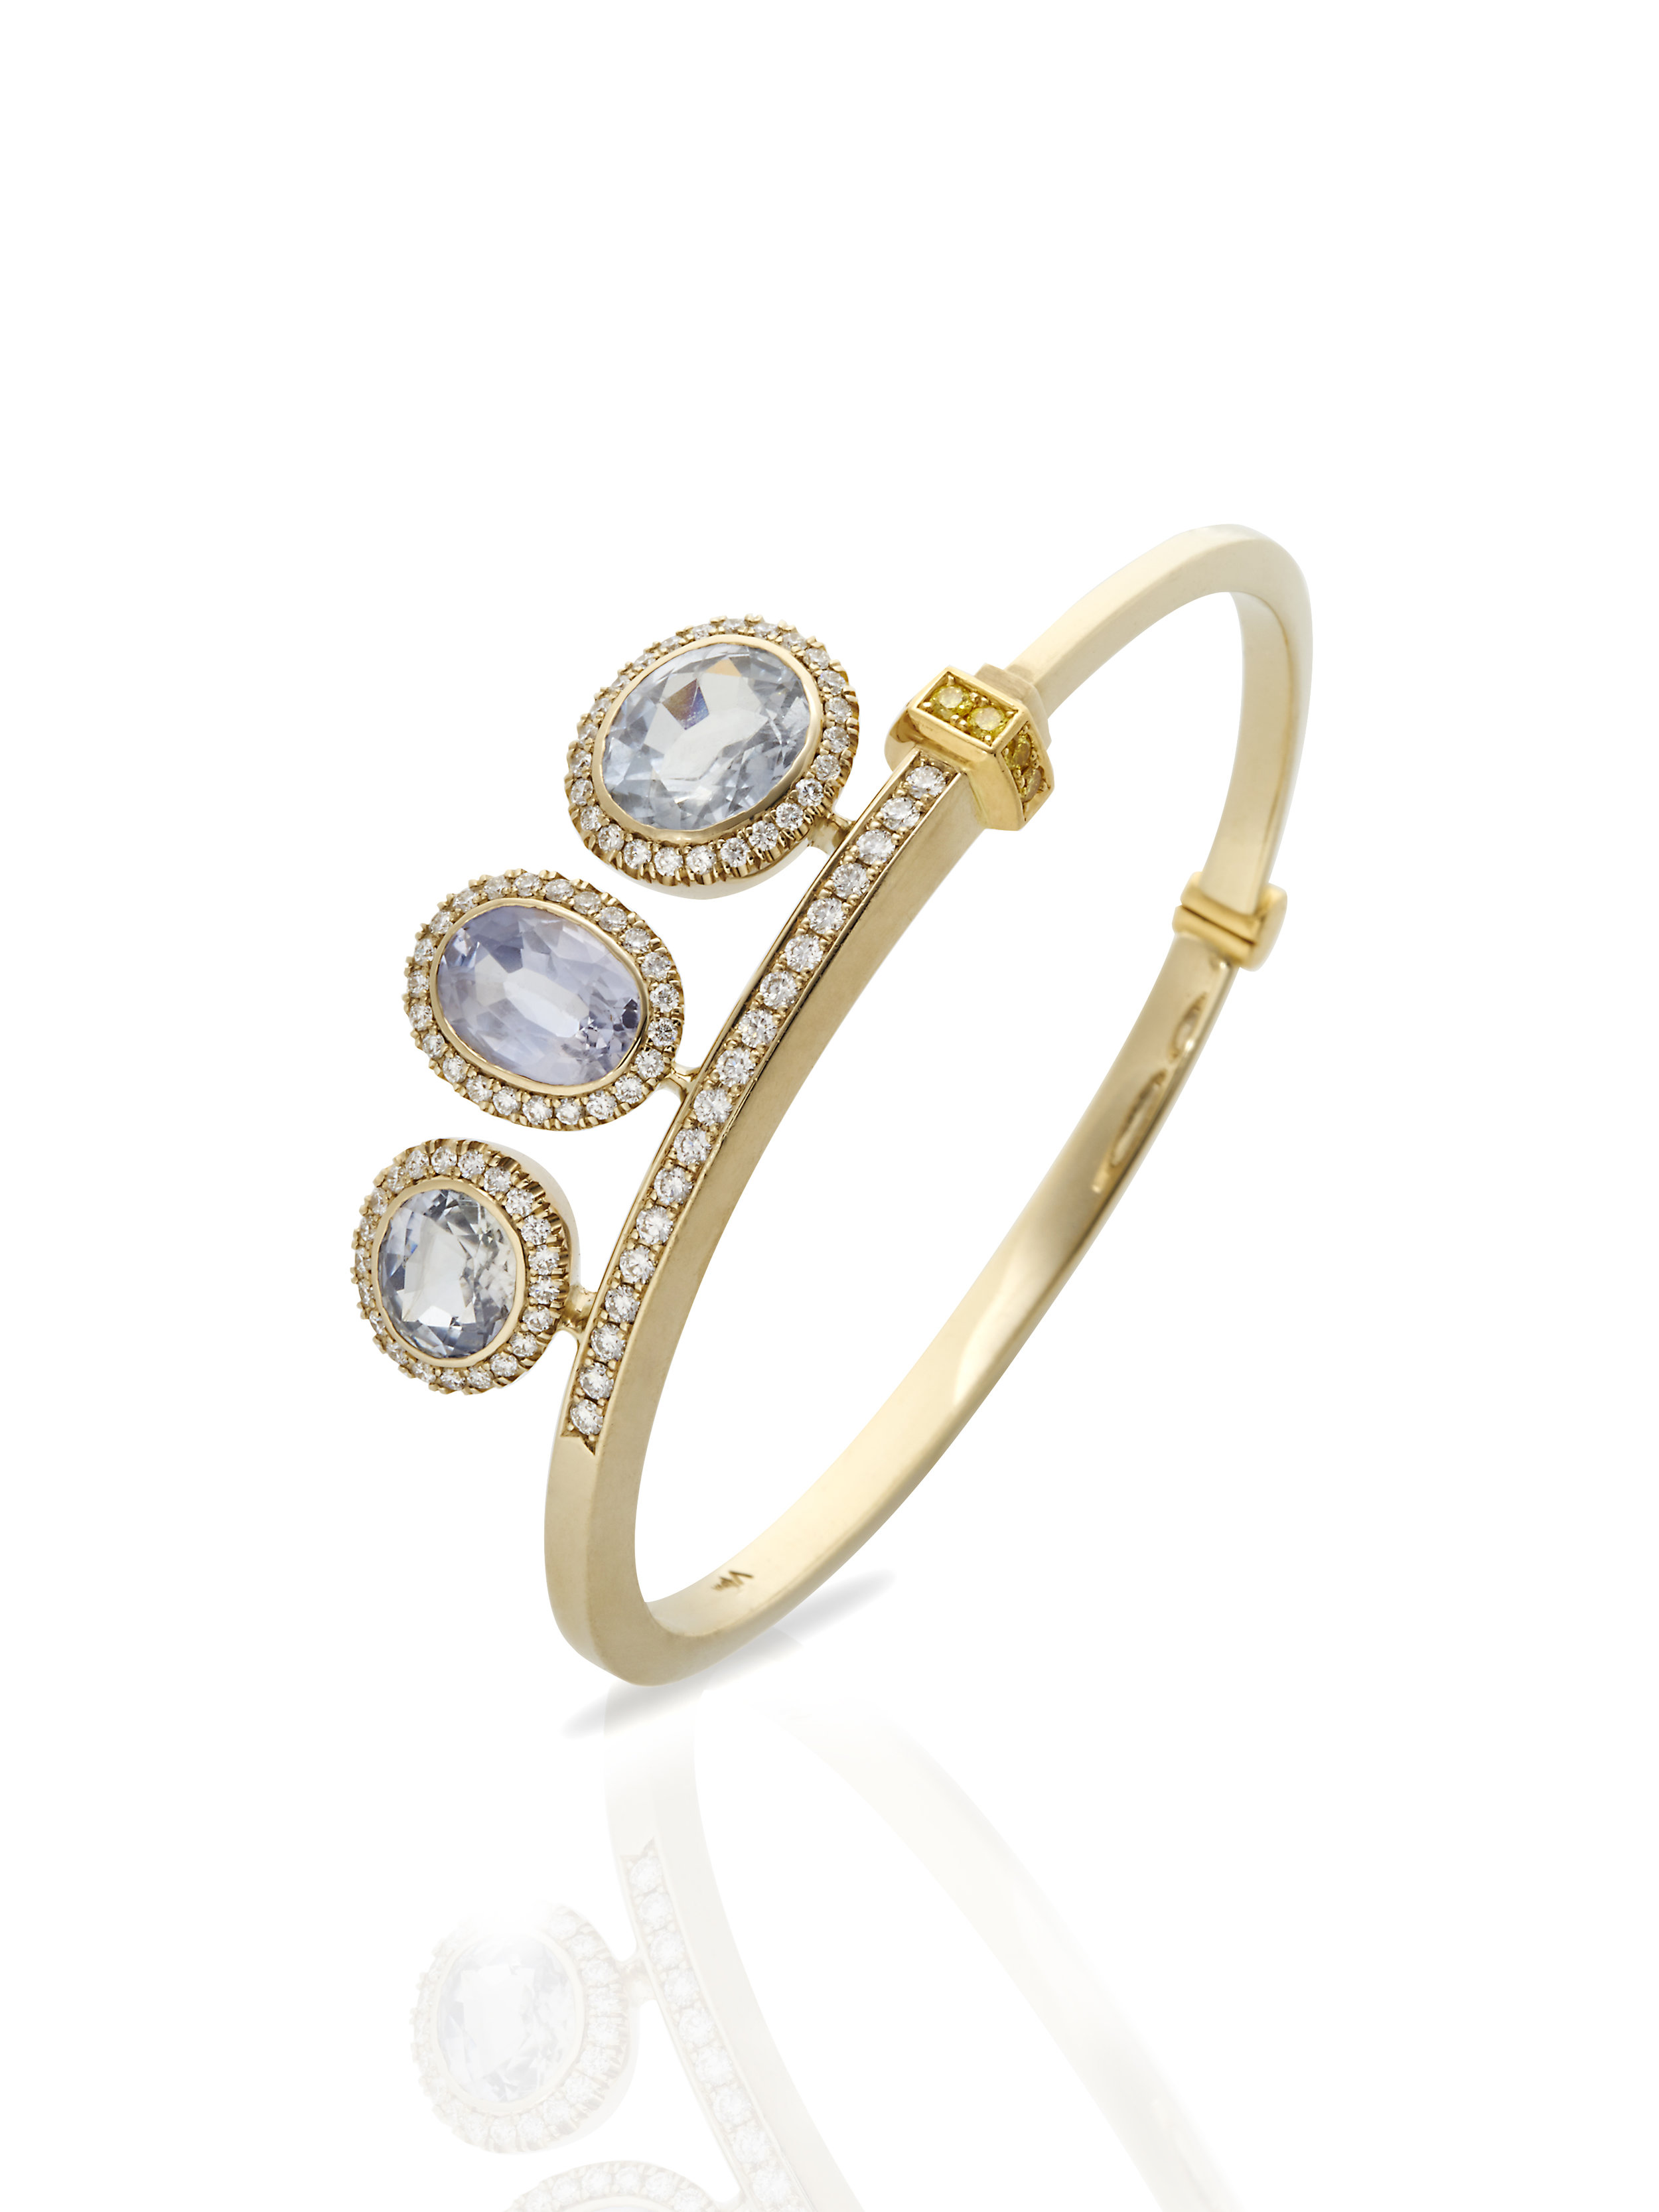 STELLA BRACELET   1.42 CT OF DIAMONDS 8.0 CT SAPPHIRES      Contact for inquiry